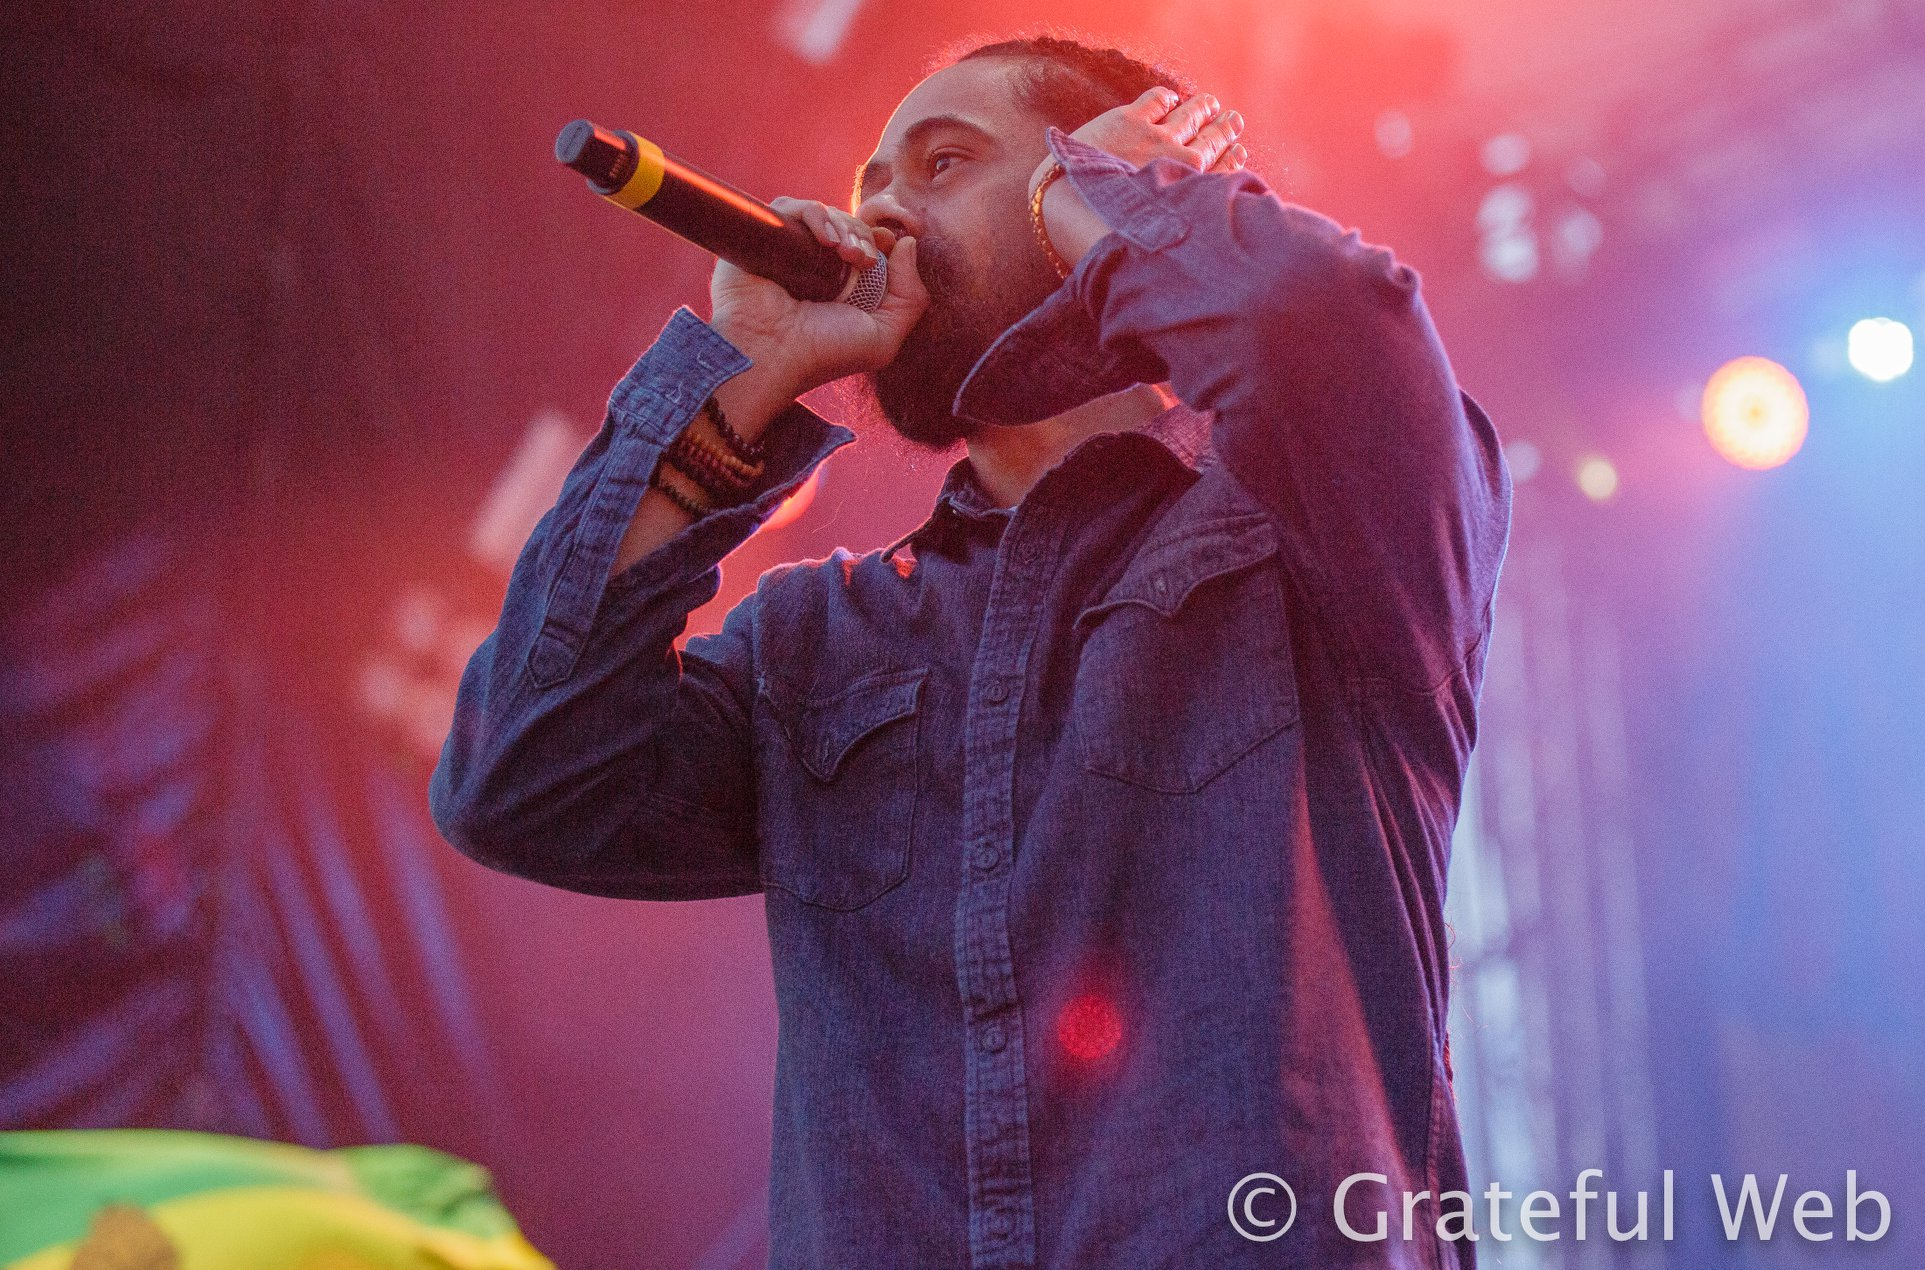 Damian Marley | Levitate Music Festival